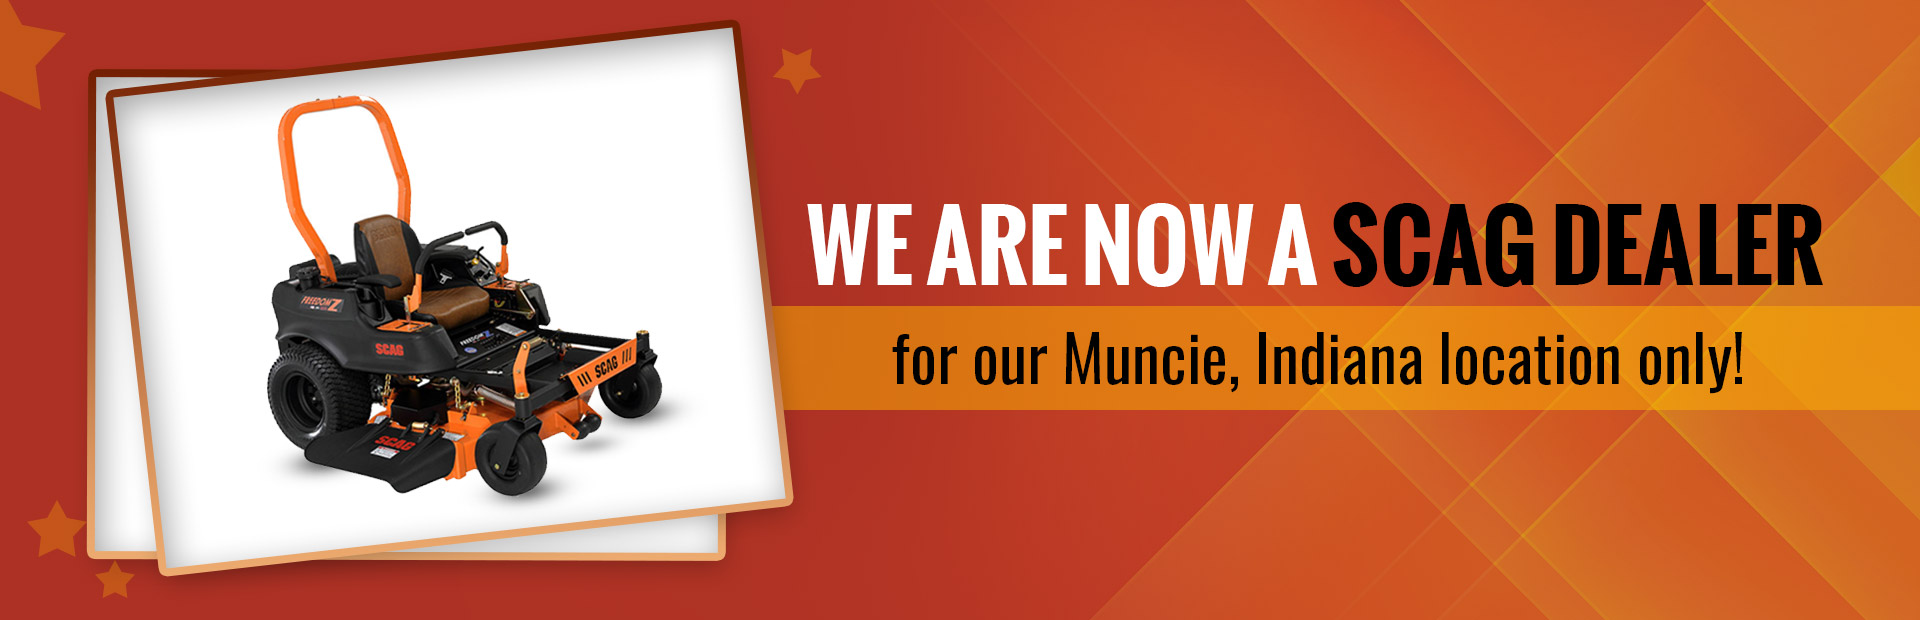 New SCAG dealer for Muncie, Indiana. Come visit us today!